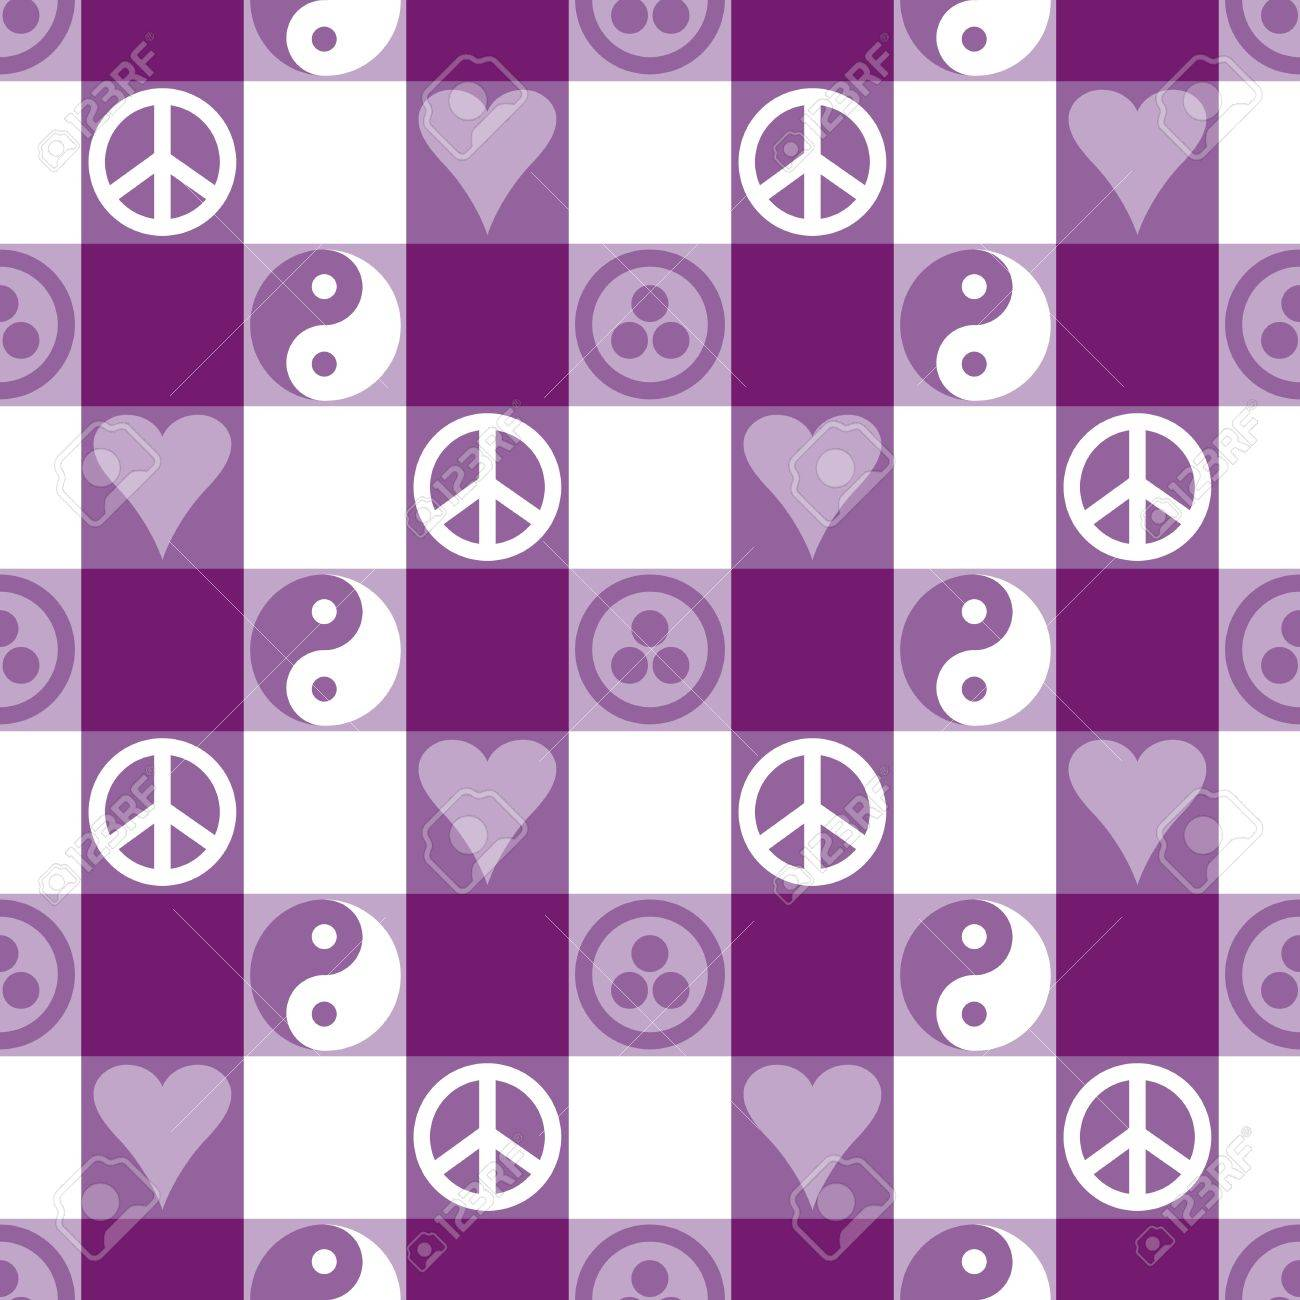 Peace Plaid in Purple seamless pattern in blue with Yin Yang, heart and peace symbols and Banner of Peace  Pax Cultura, Roerich s Pact Stock Vector - 19869970